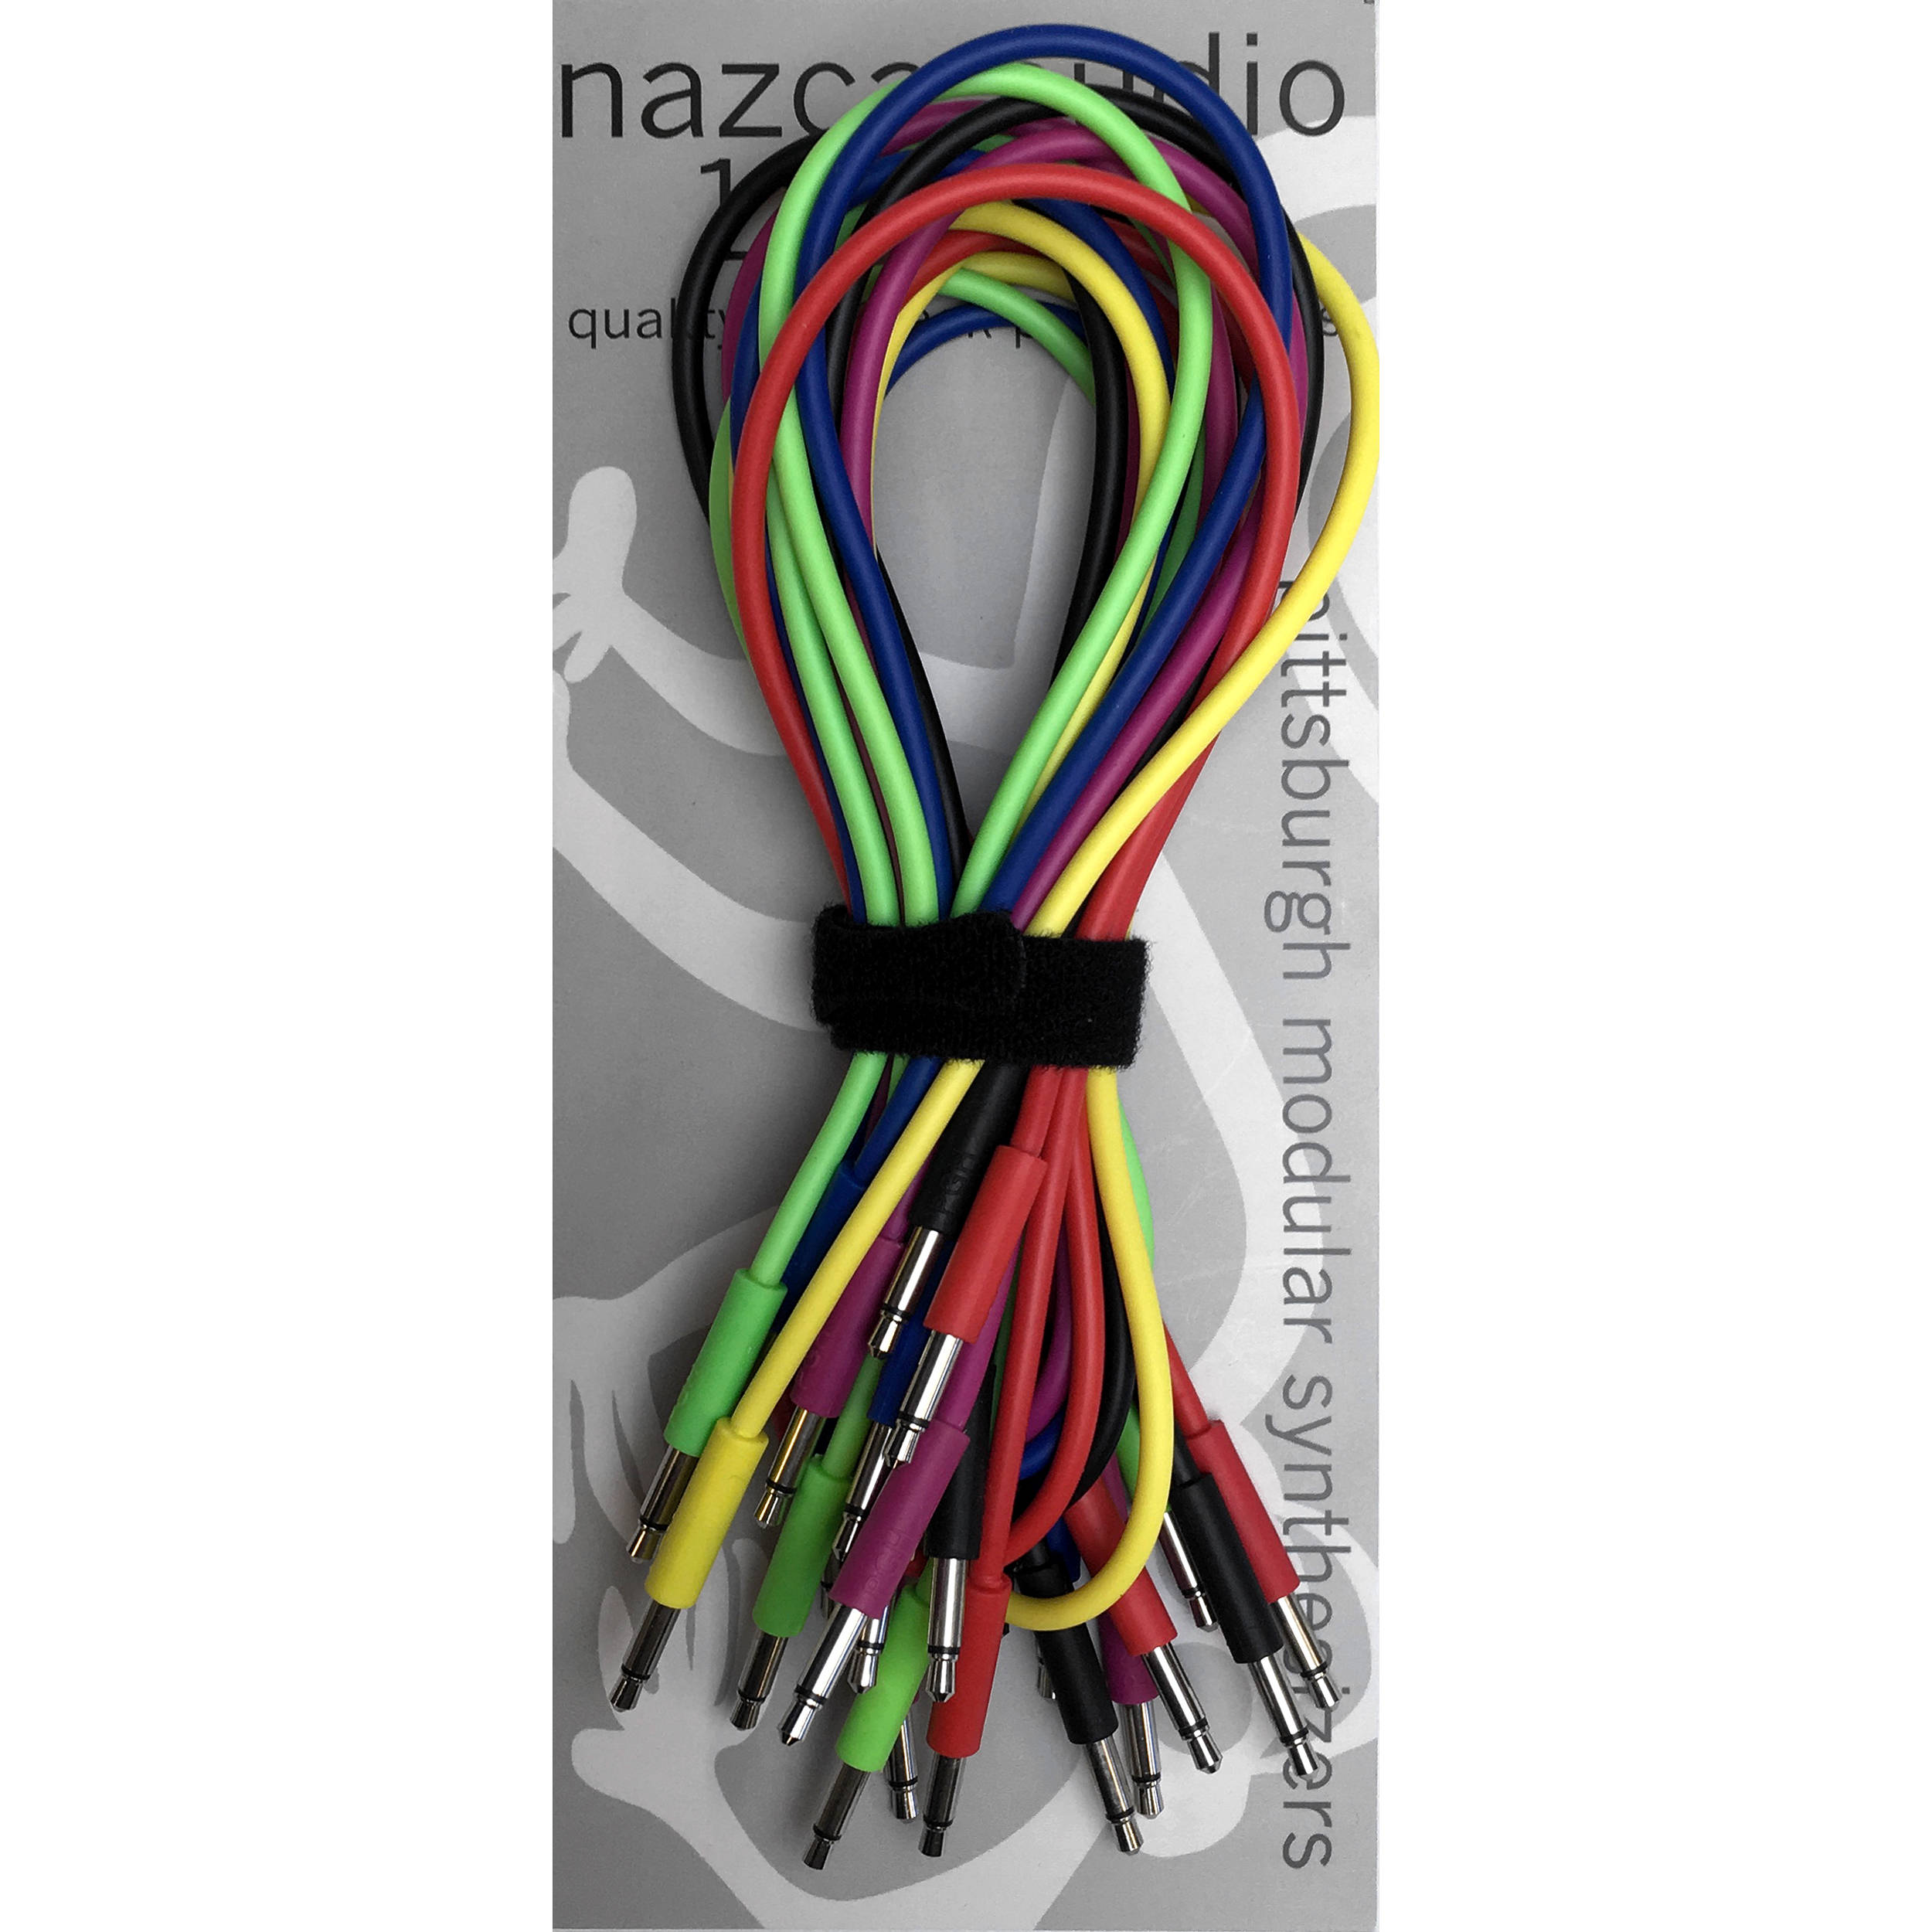 Pittsburgh Modular Nazca Noodles Patch Cable Kit PMS5005 B&H